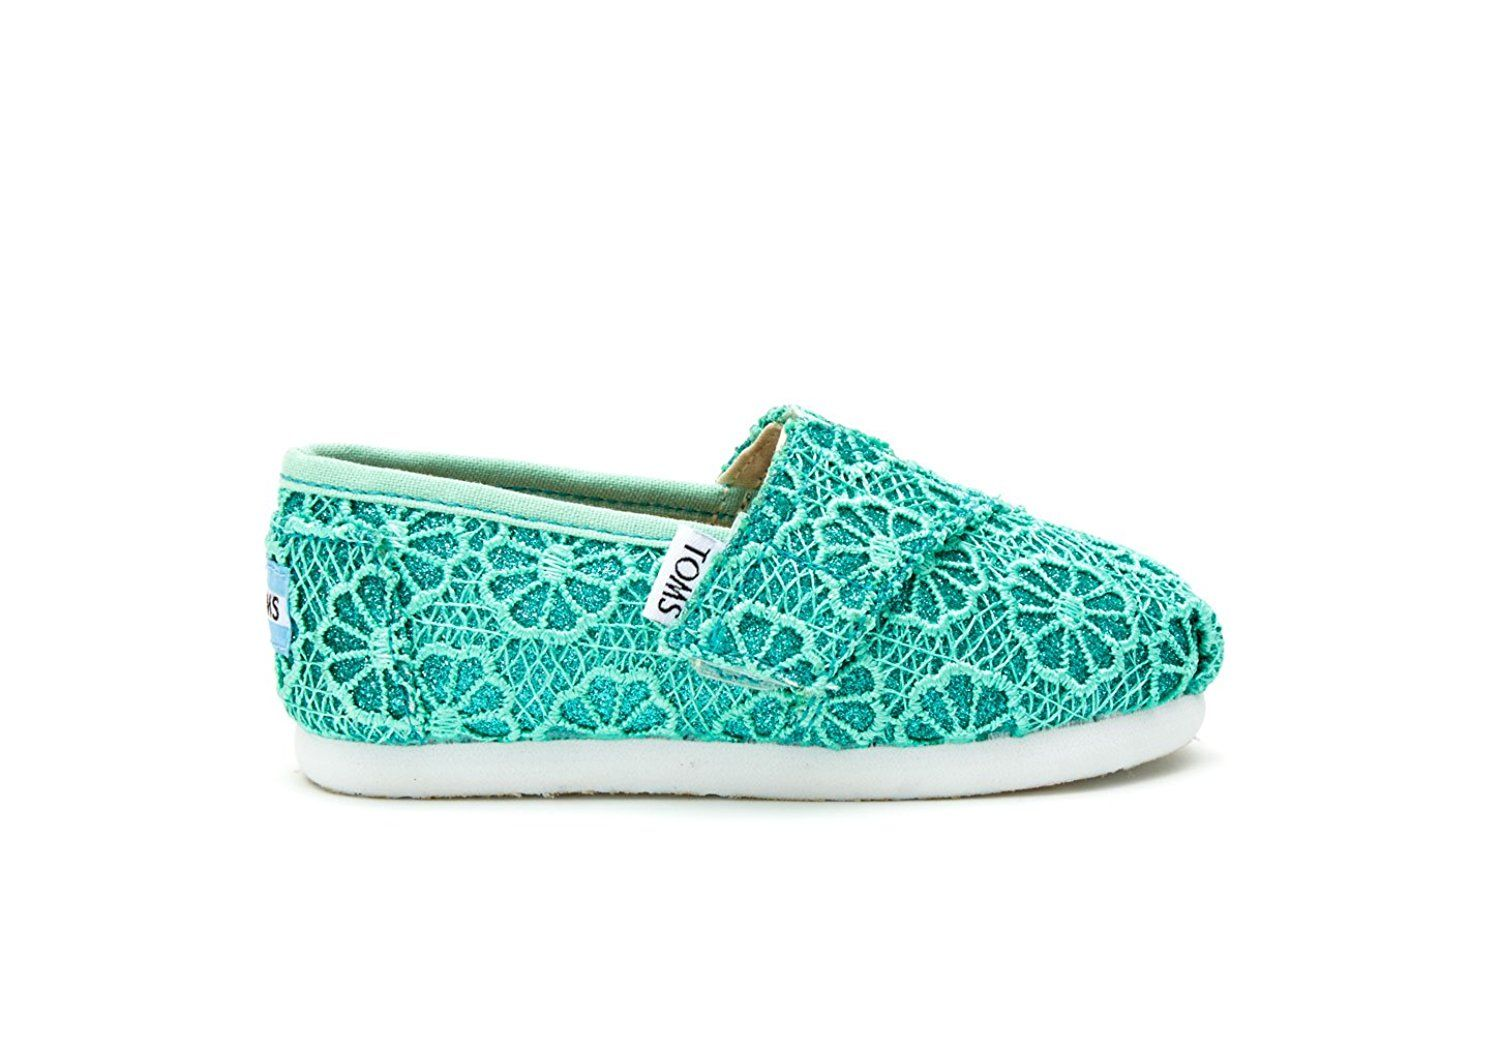 7613bc4941174 Amazon.com: Tom's Girl's Crochet Glitter Shoes, Mint Crochet Glitter ...